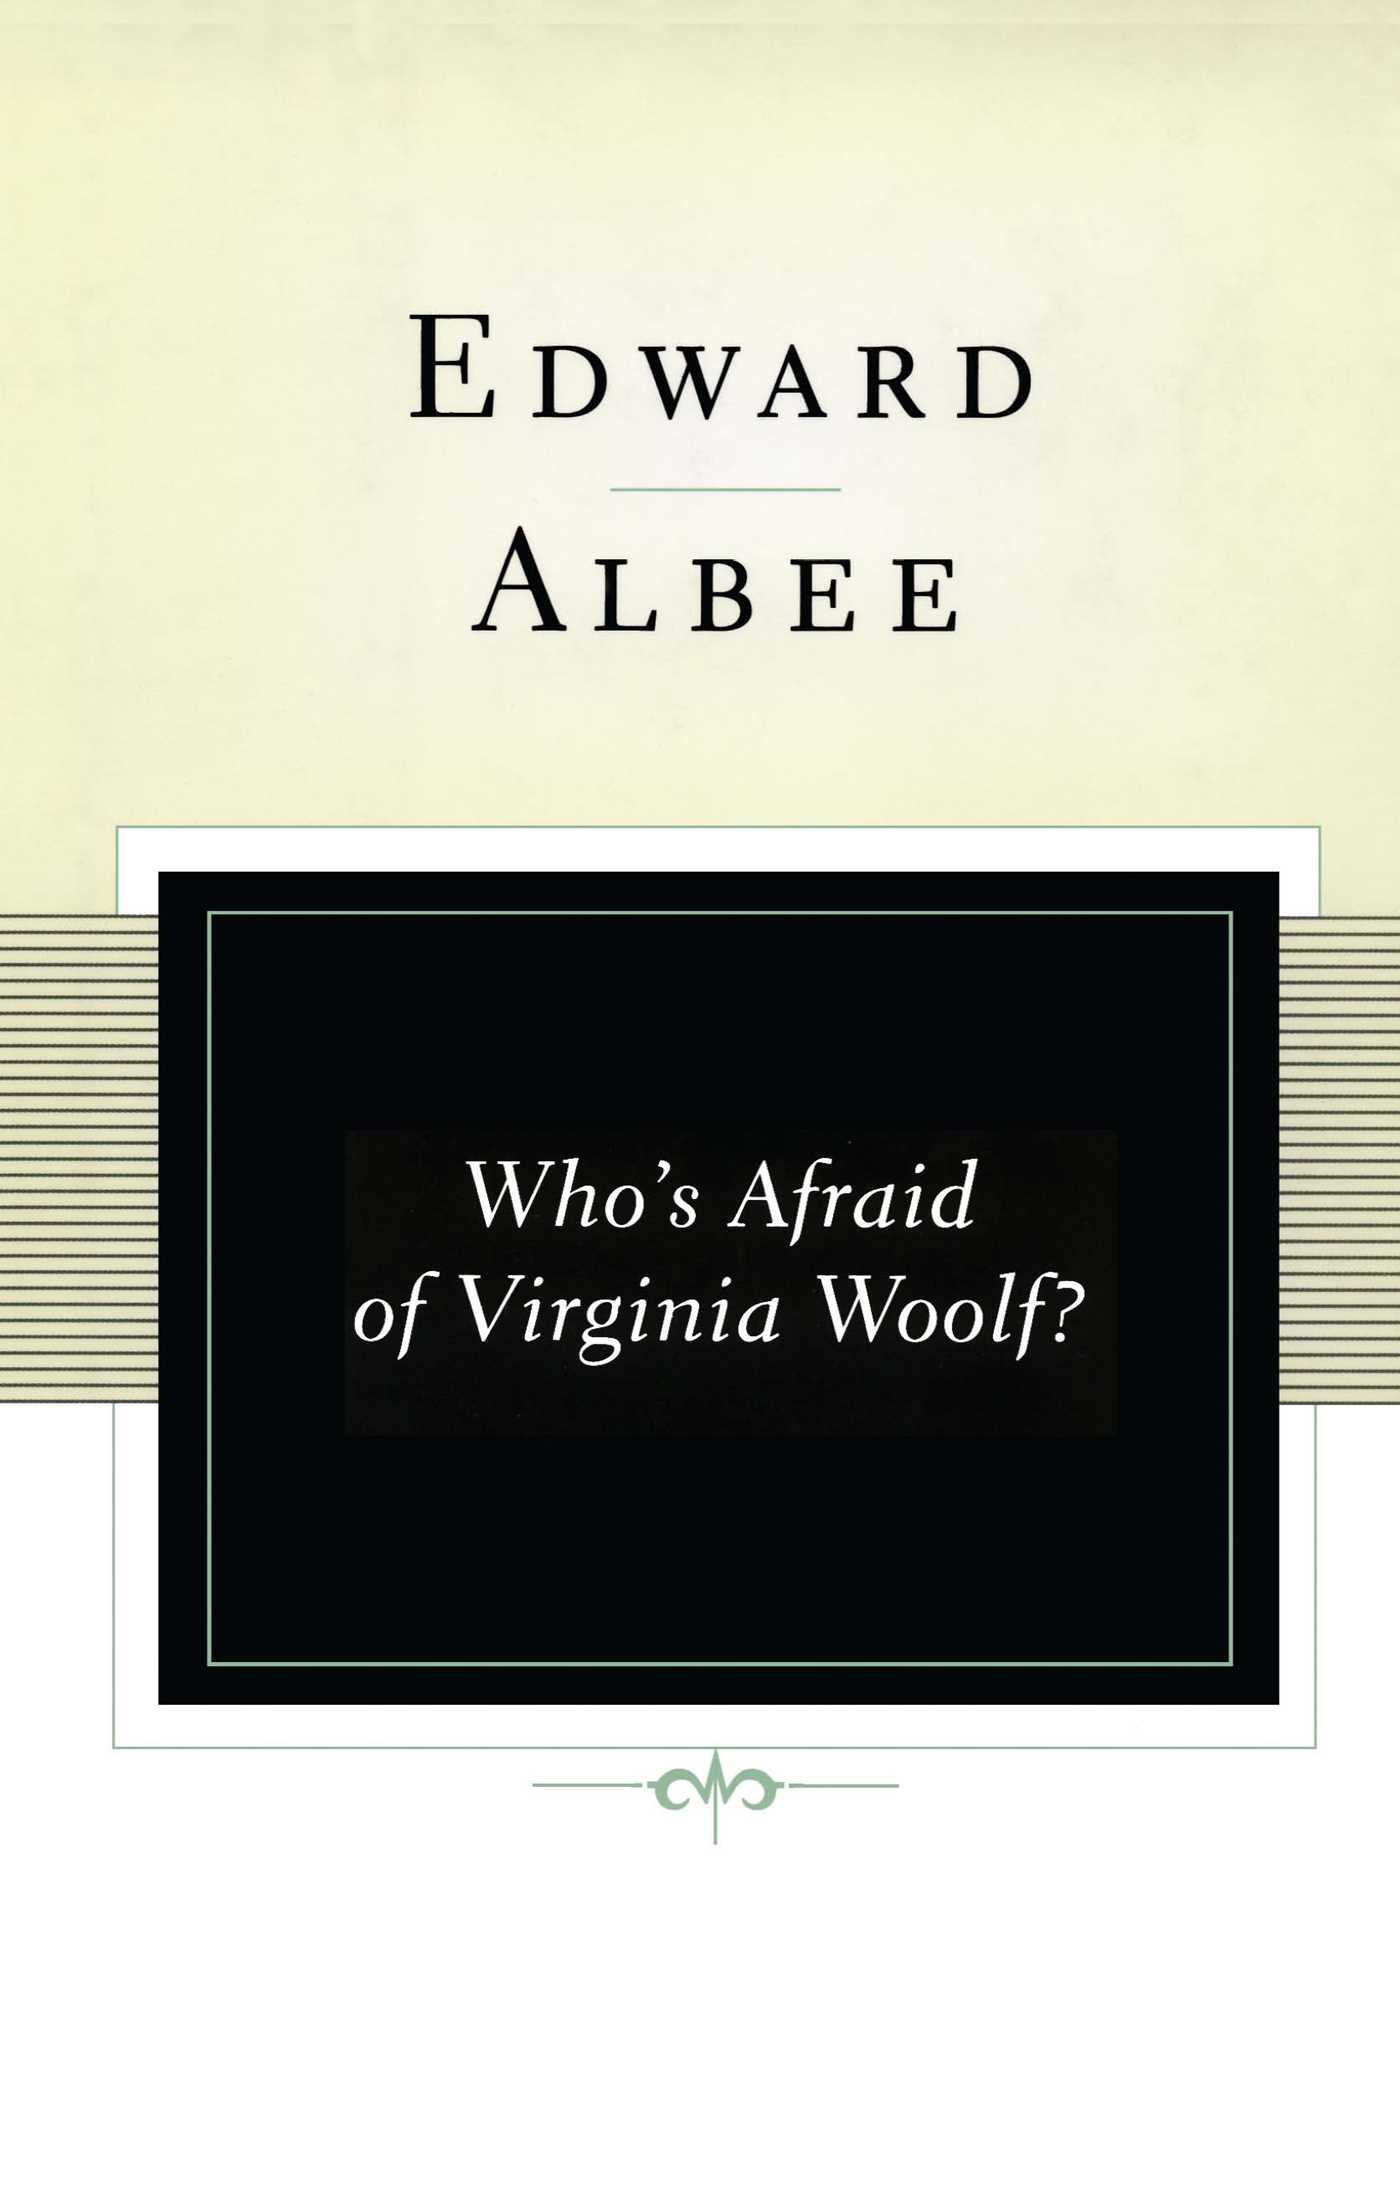 the major role of religion in the play whos afraid of virginia woolf by edward albee Works cited albee, edward who's afraid of virginia woolf new york: atheneum house, 1962 finkelstein, bonnie blumenthal - reality versus illusion in who's afraid of virginia woolf in his play, the american dream, edward albee unveils a tortured family that is symbolic of the reality.